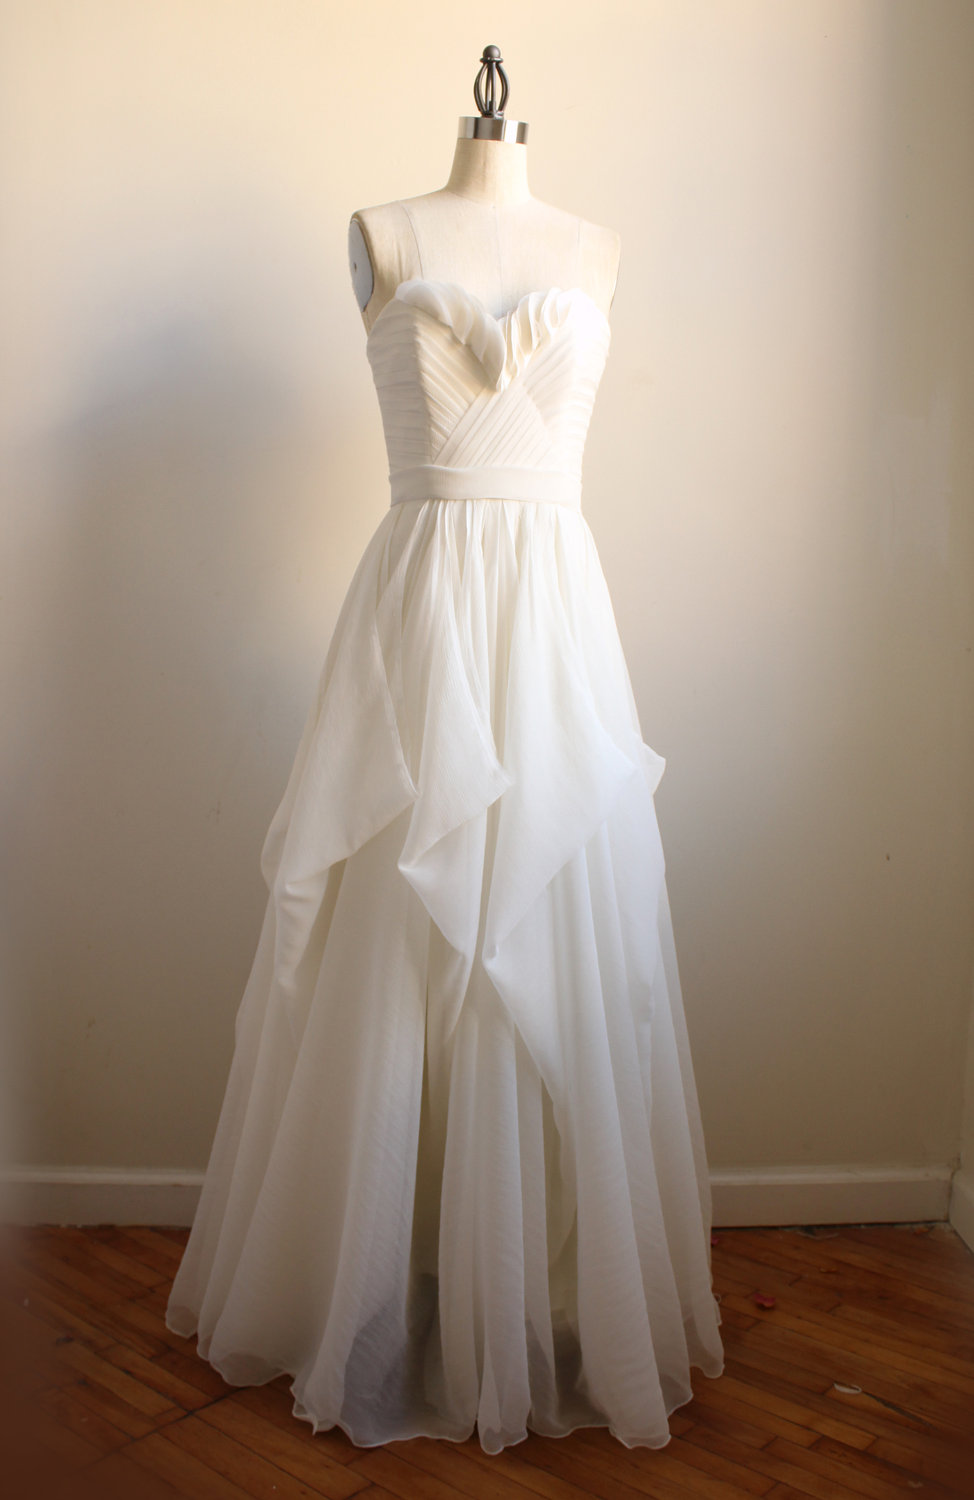 Handmade-wedding-dresses-etsy-bridal-gown-julietta-2.original